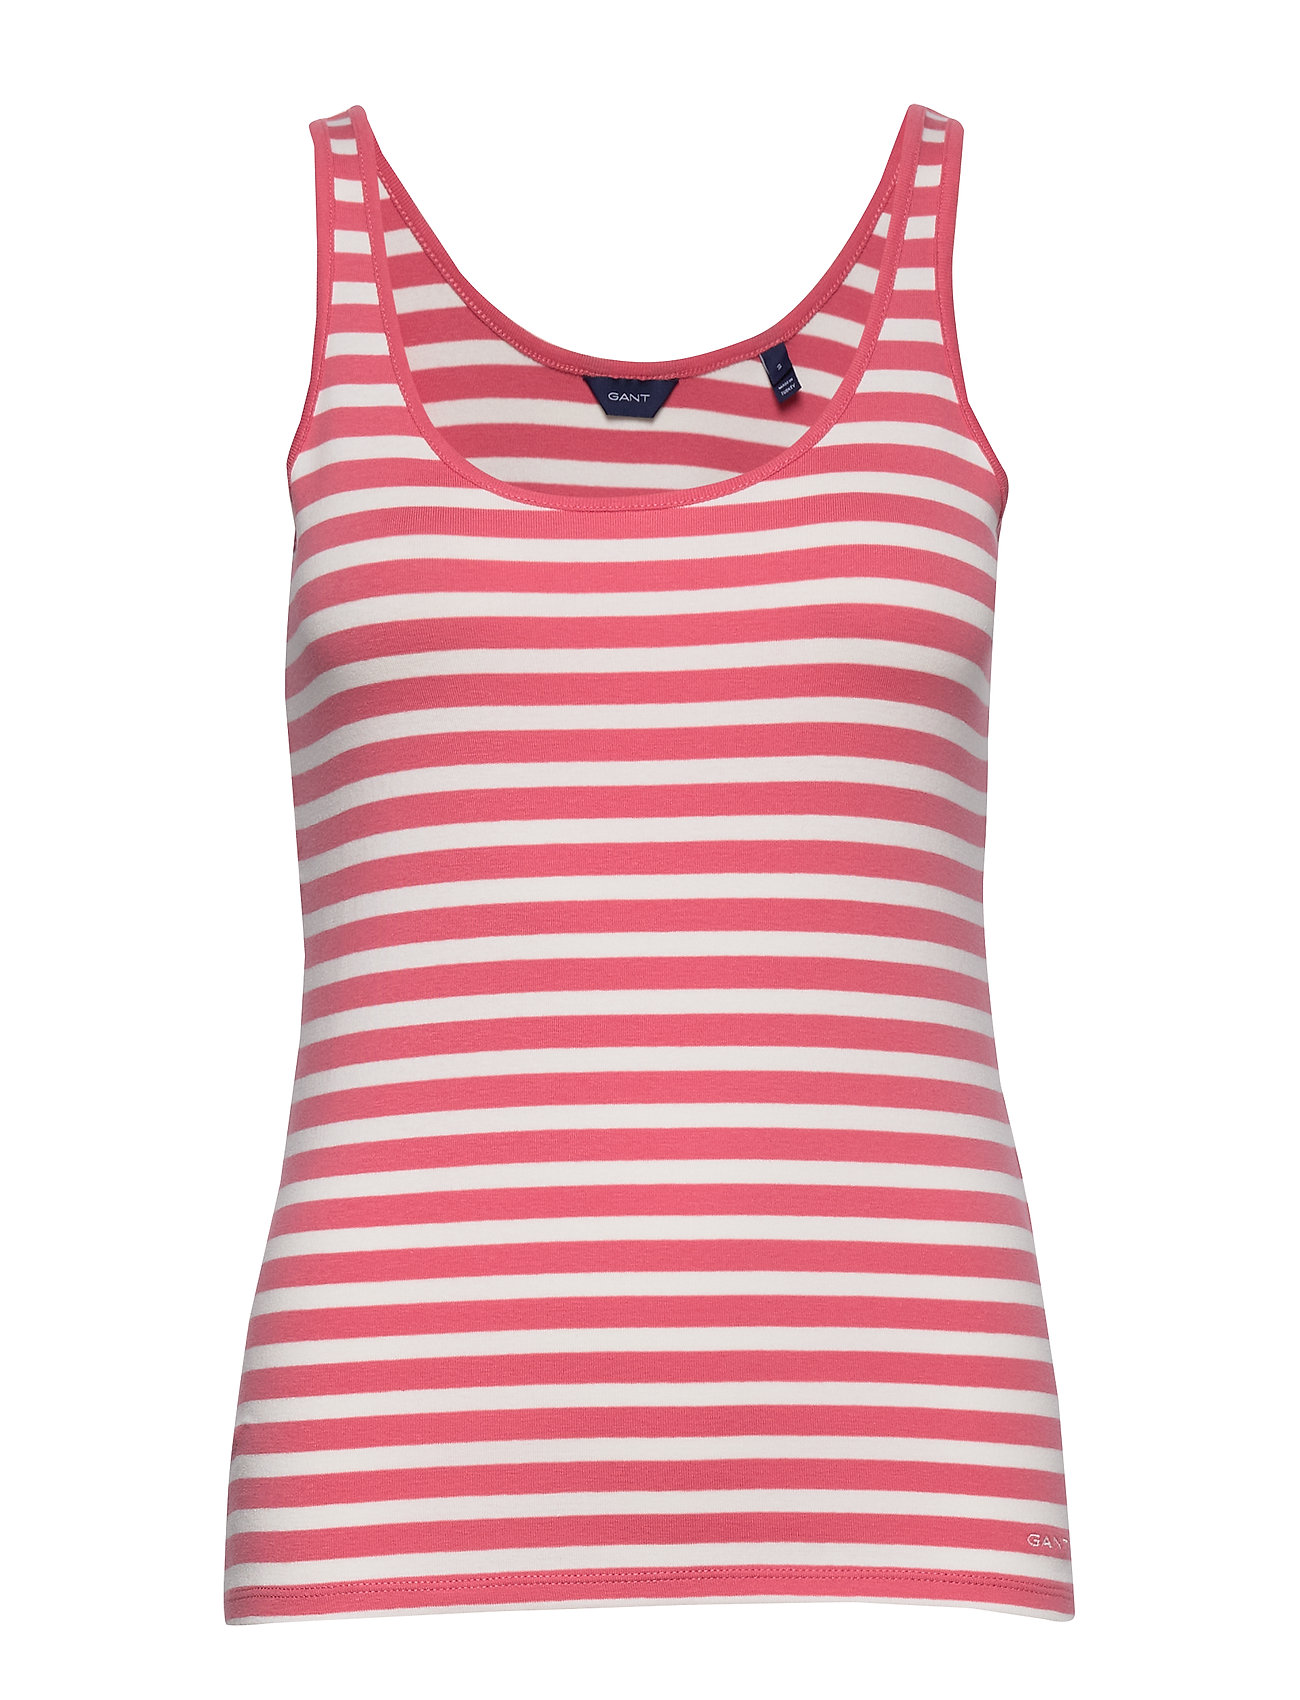 Gant D1. STRIPED 1x1 RIB TANK TOP - RAPTURE ROSE